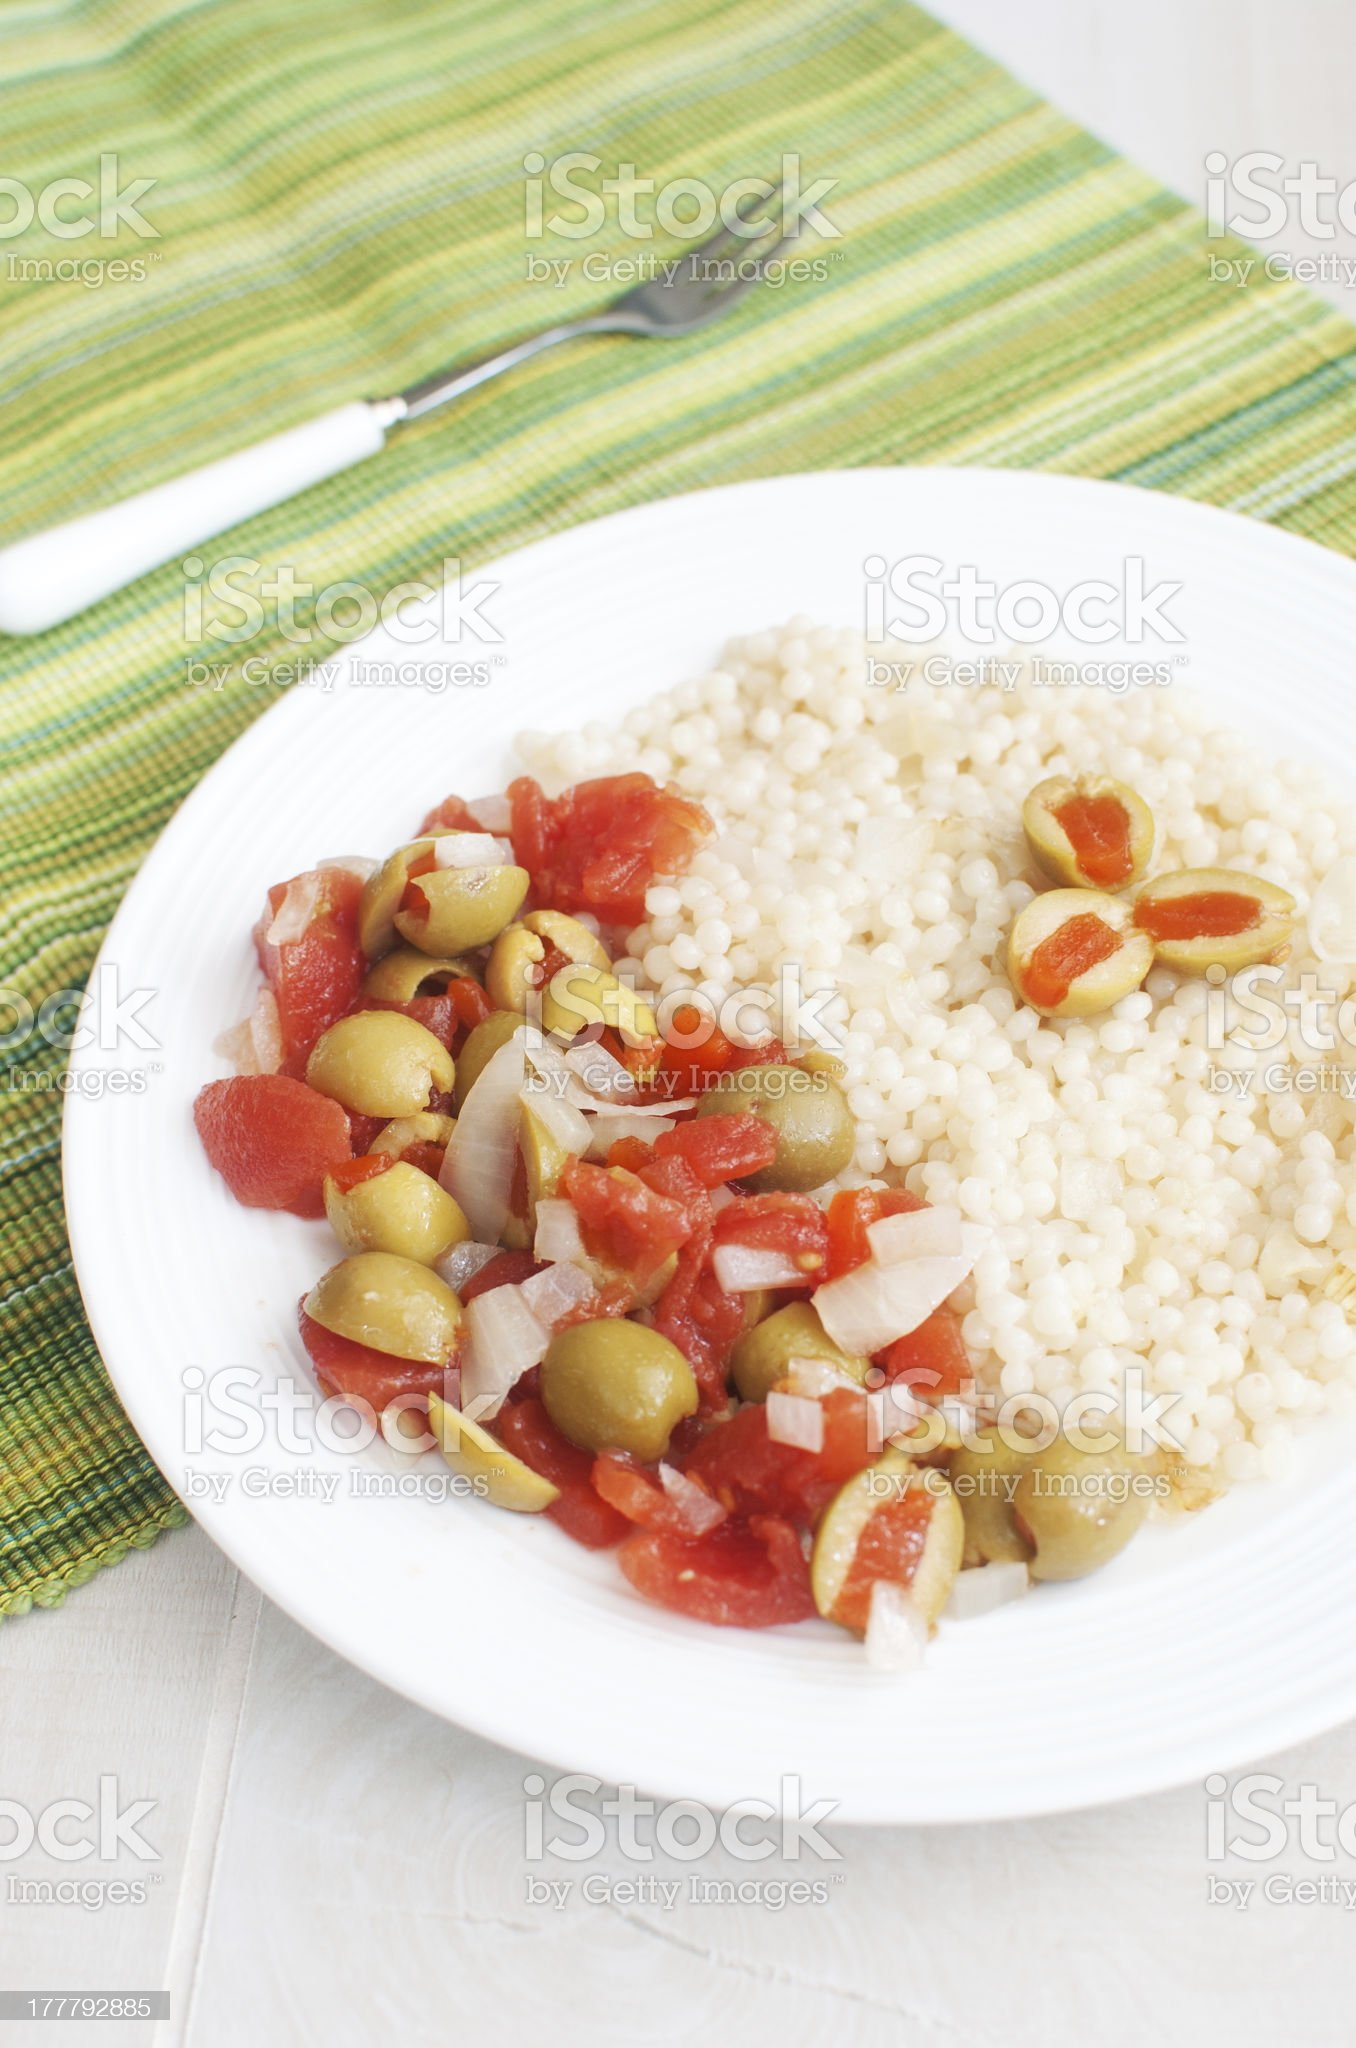 Stuffed olives and tomato salad with couscous royalty-free stock photo